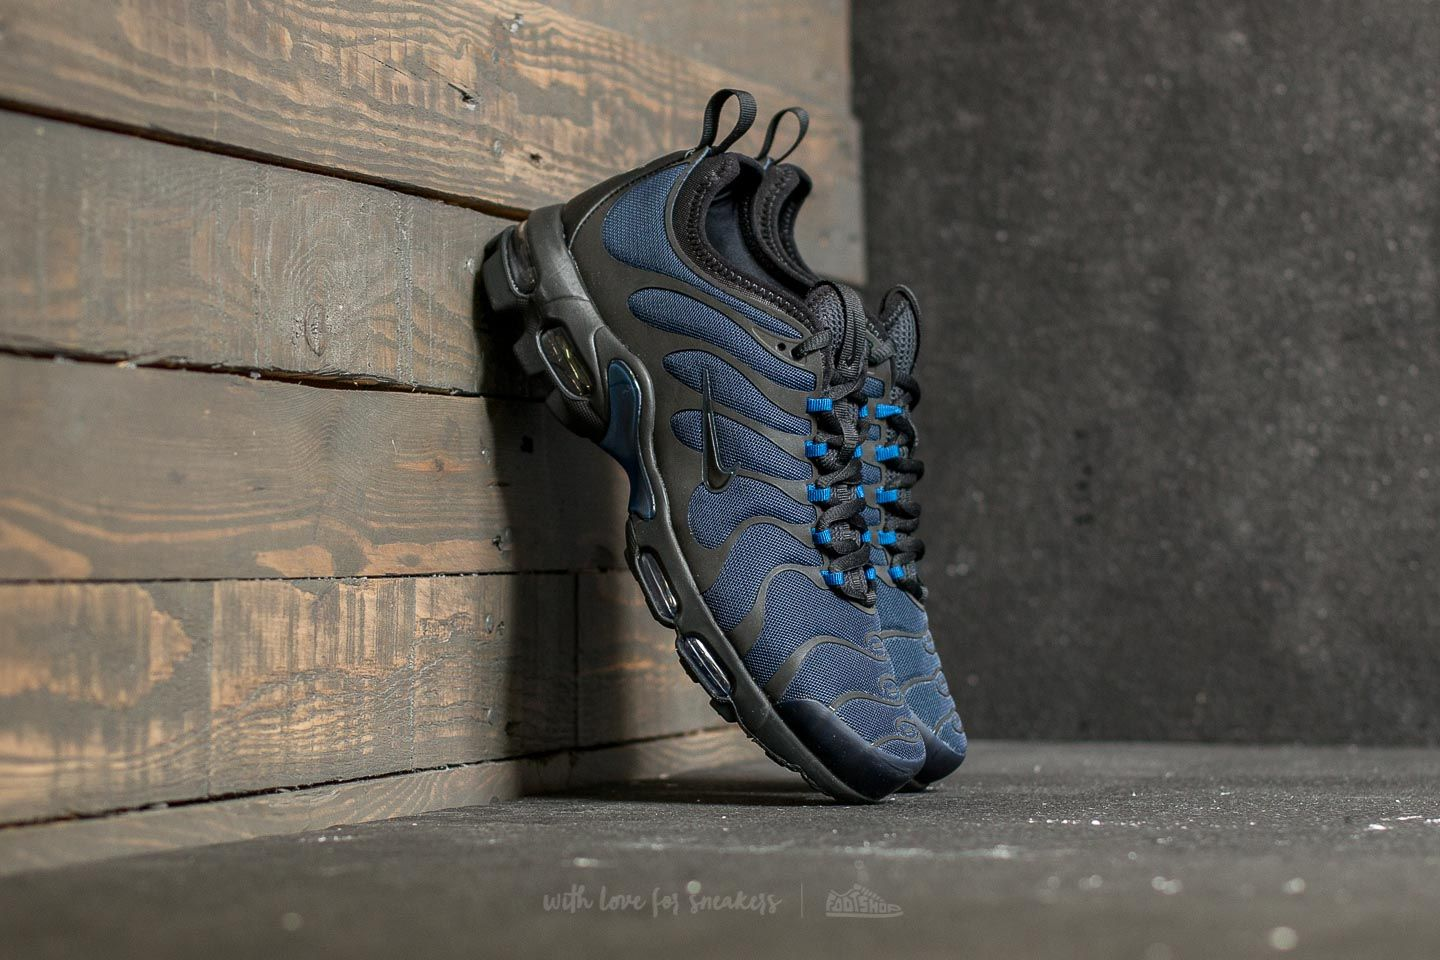 5a23683d78 Nike Air Max Plus TN Ultra Obsidian/ Black-Gym Blue | Footshop